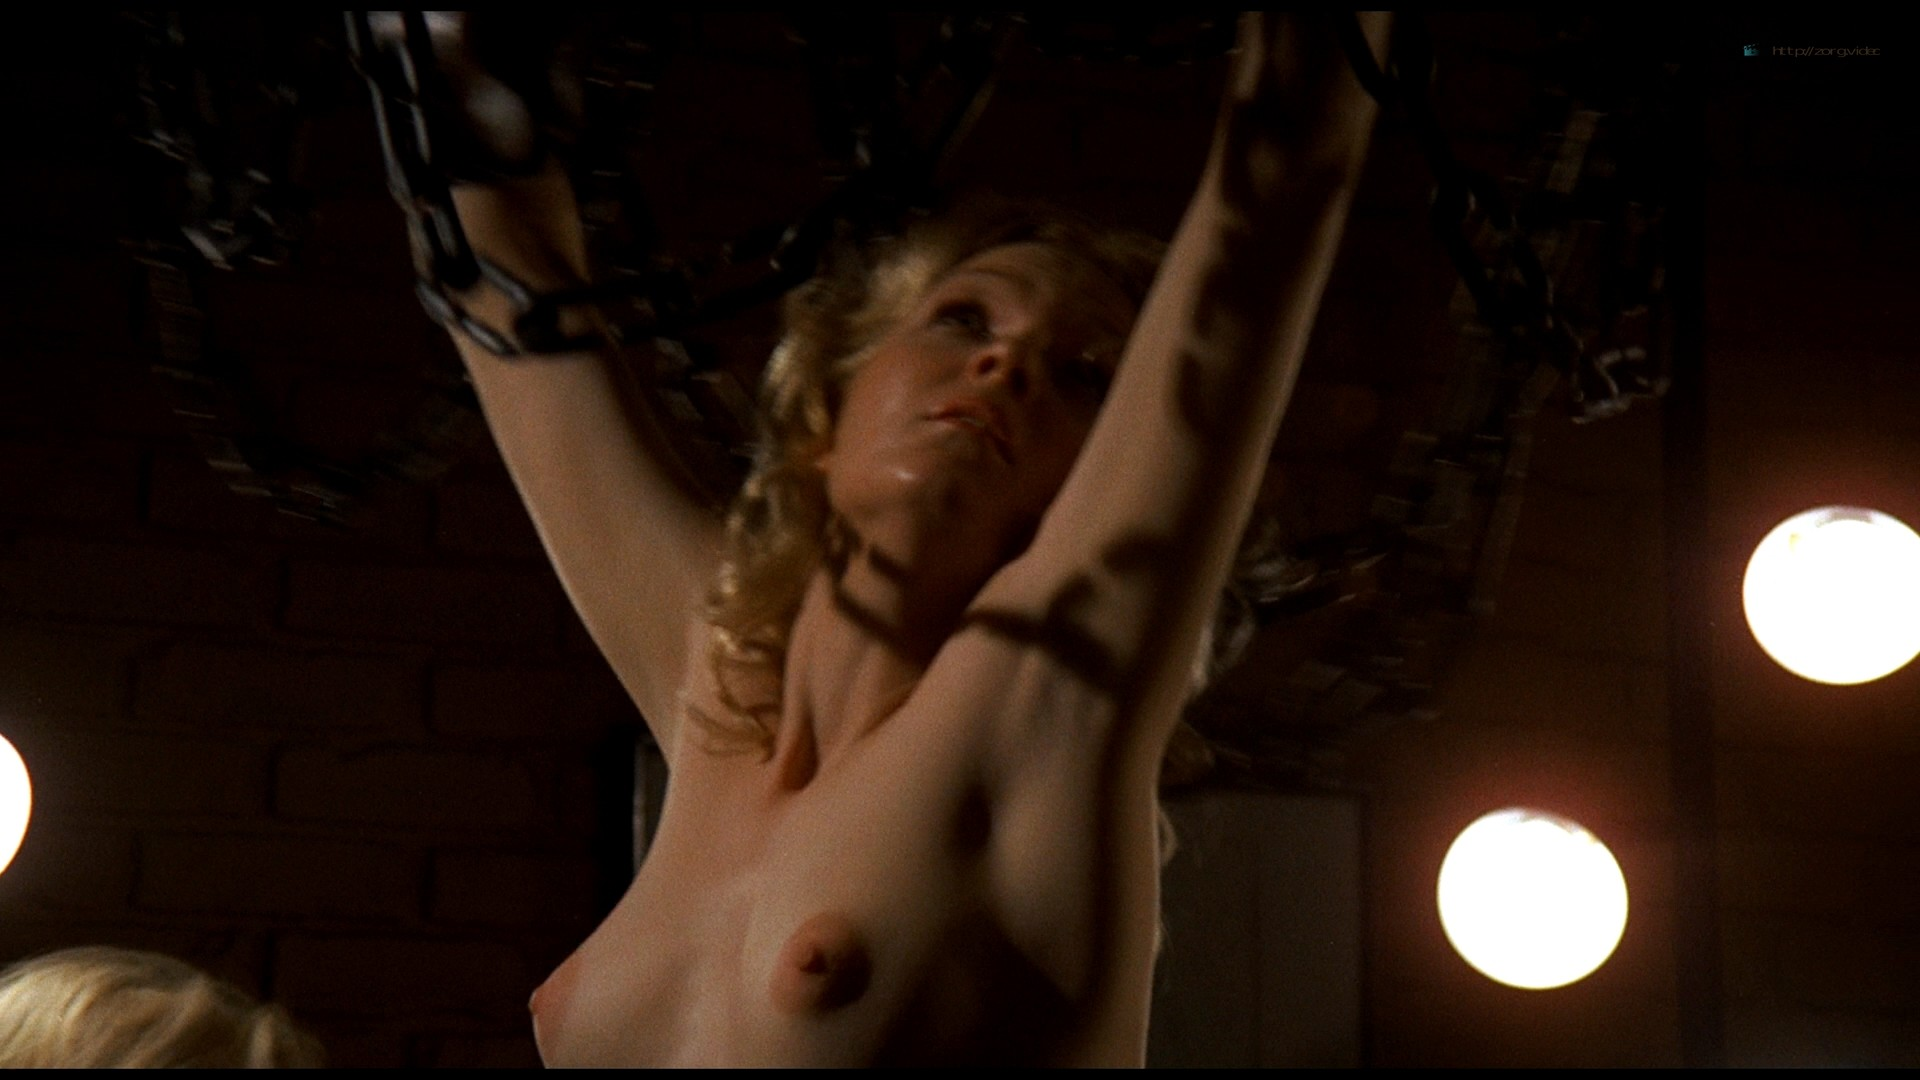 Rebecca Brooke nude explicit bj Yvette Hiver nude bj too - The Image (1975) HD 1080p BluRay (r) (5)